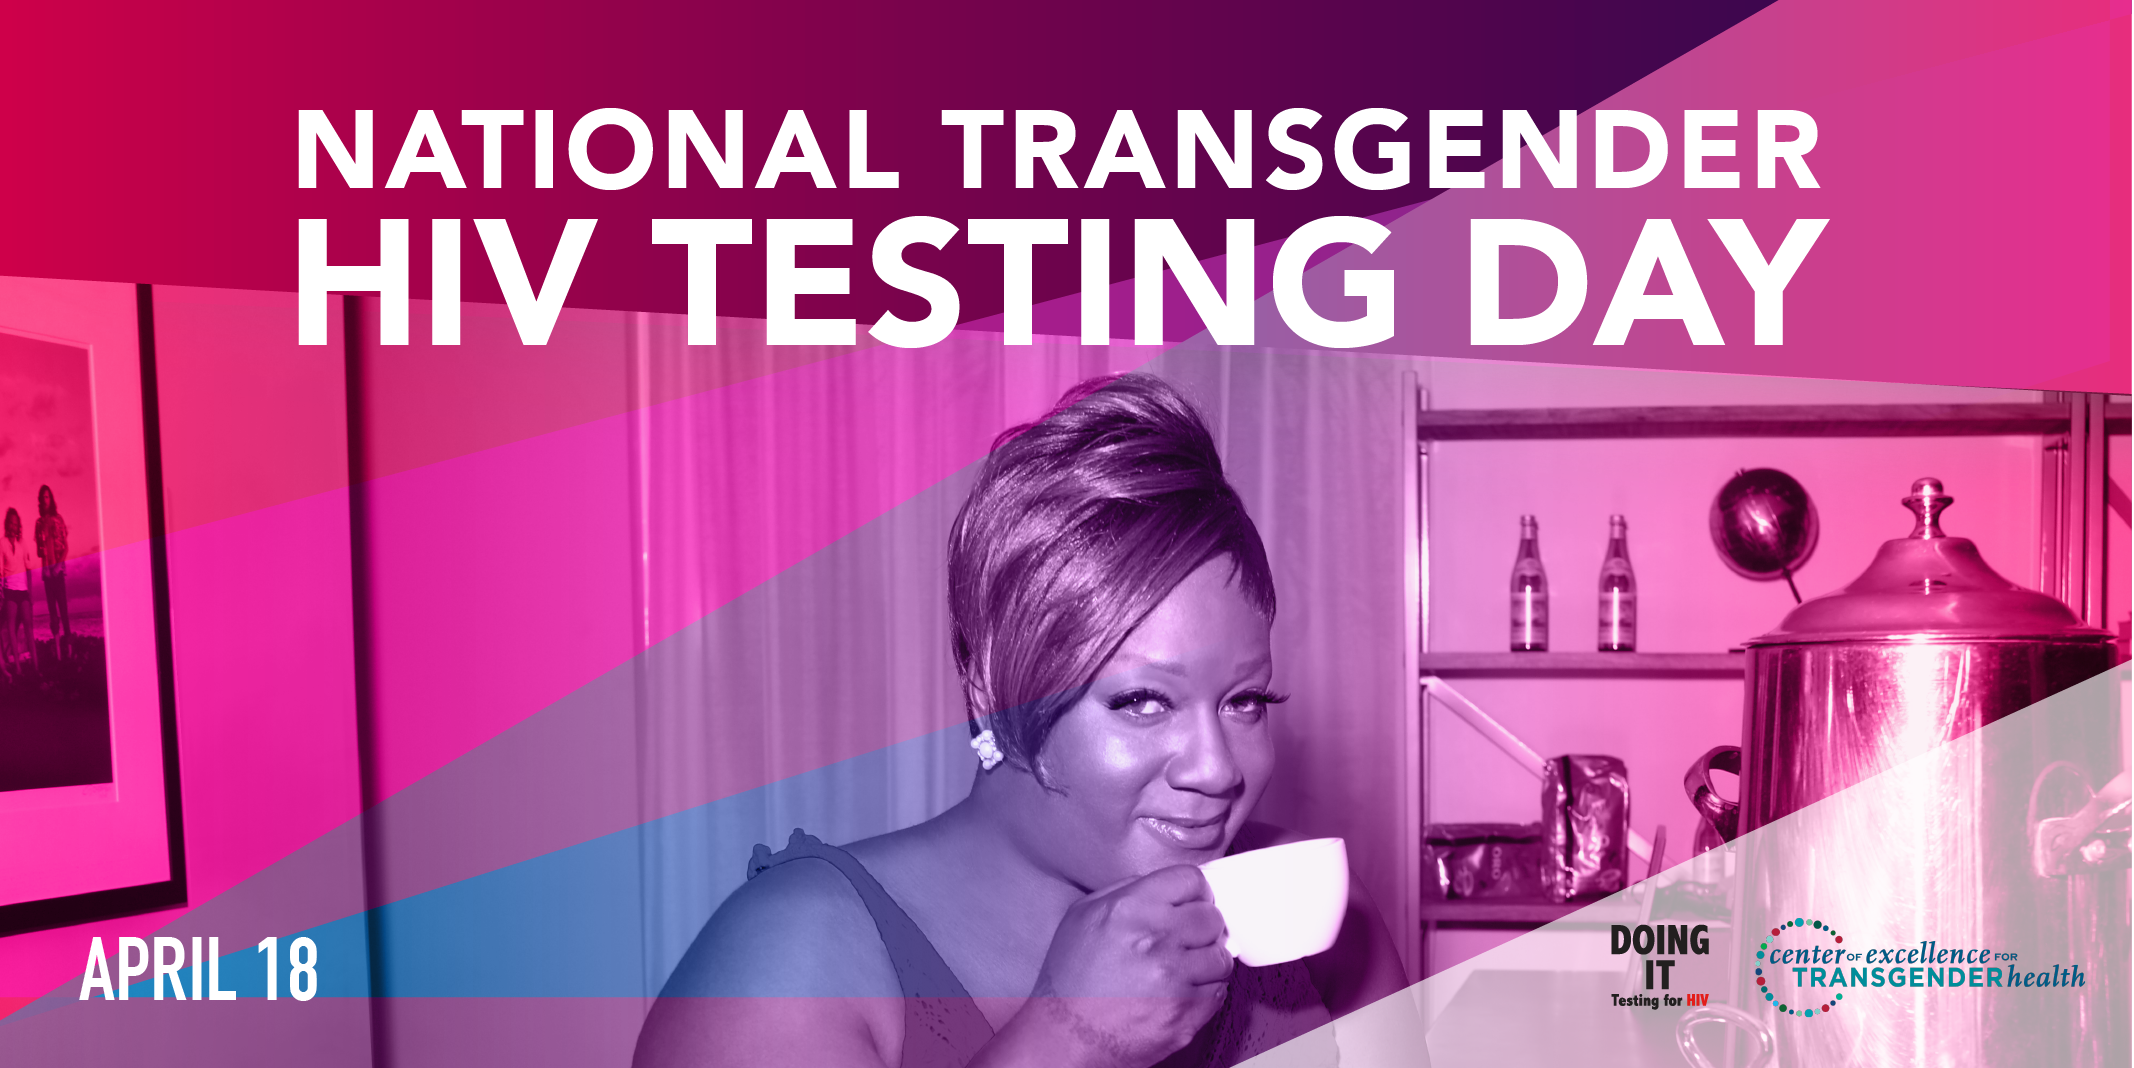 National Transgender HIV Testing Day - April, 18 2018